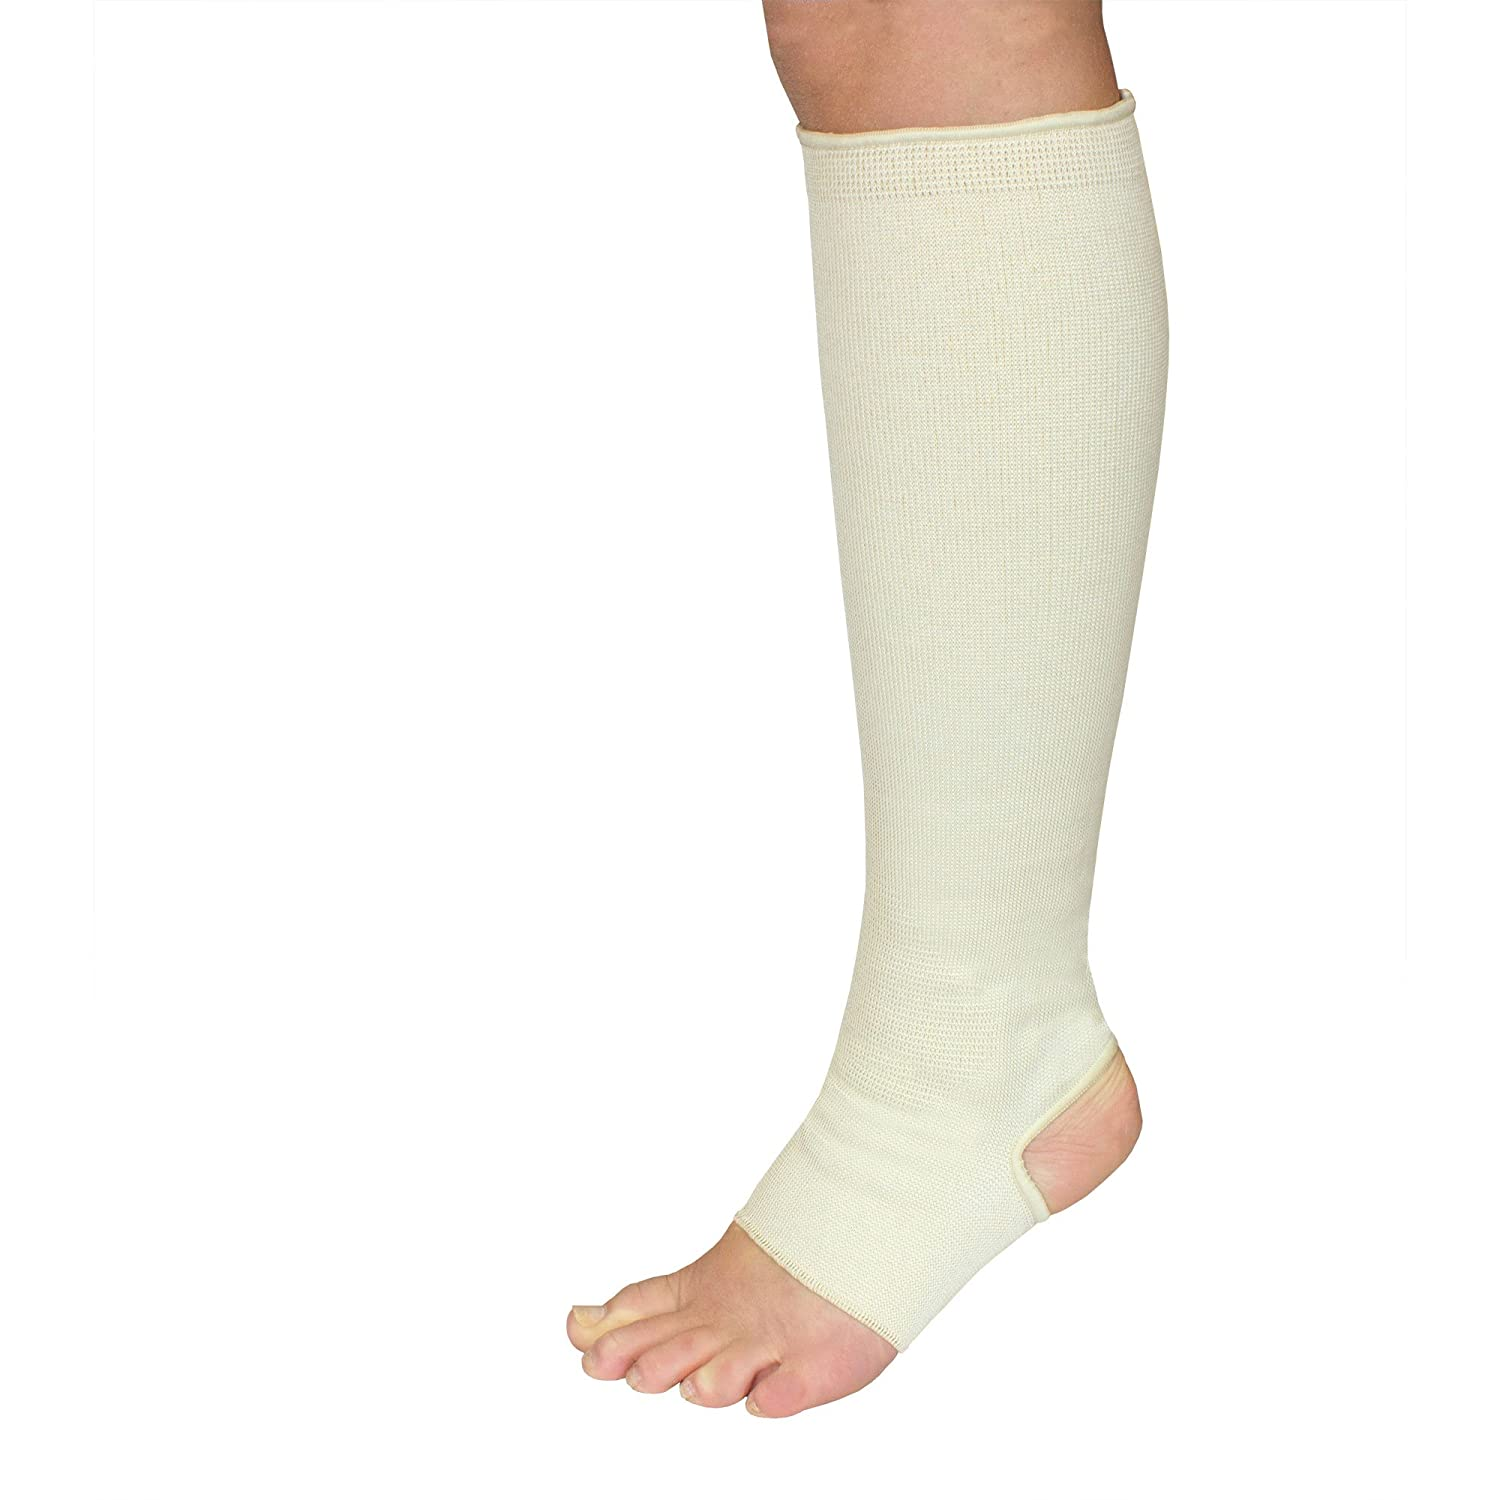 3462f72a5a Amazon.com: Elastic Garter Hose Ankle Leg Medical Compression Stocking  Support (X-Small): Health & Personal Care